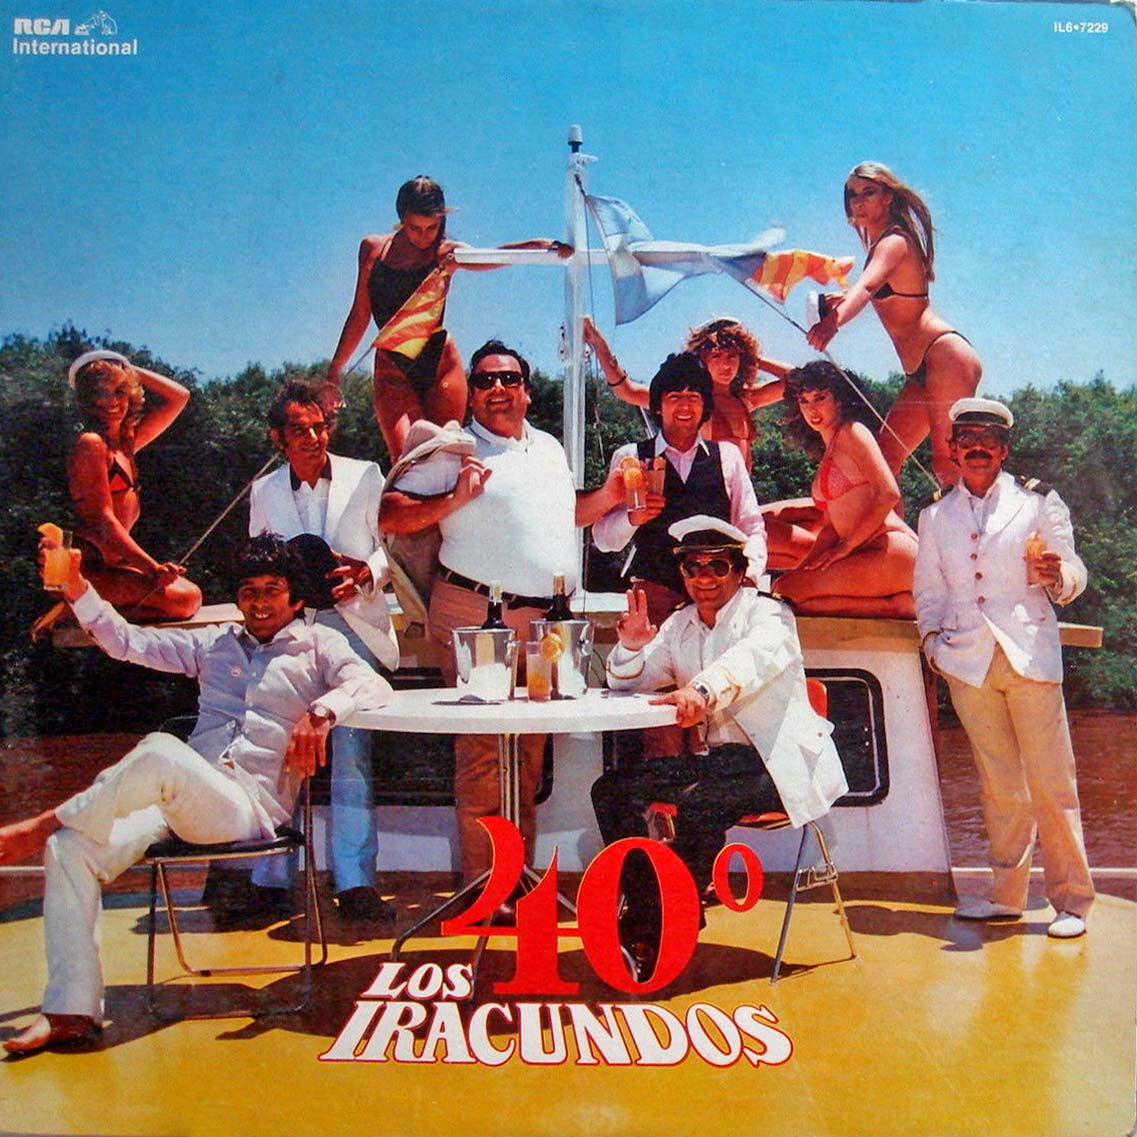 LOS IRACUNDOS 40 Degrees